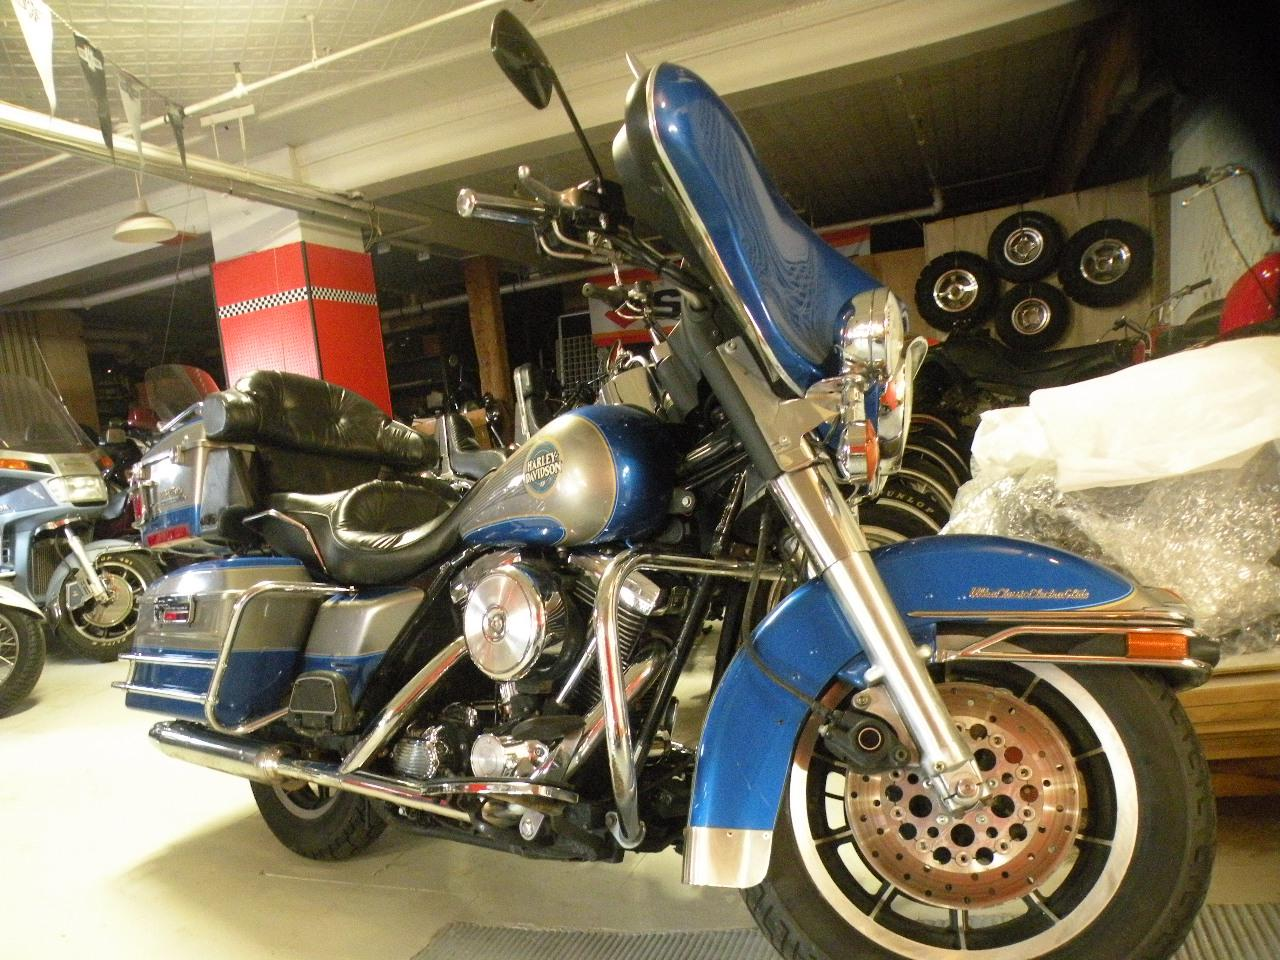 hight resolution of 1996 harley davidson electra glide ultra classic evo tou